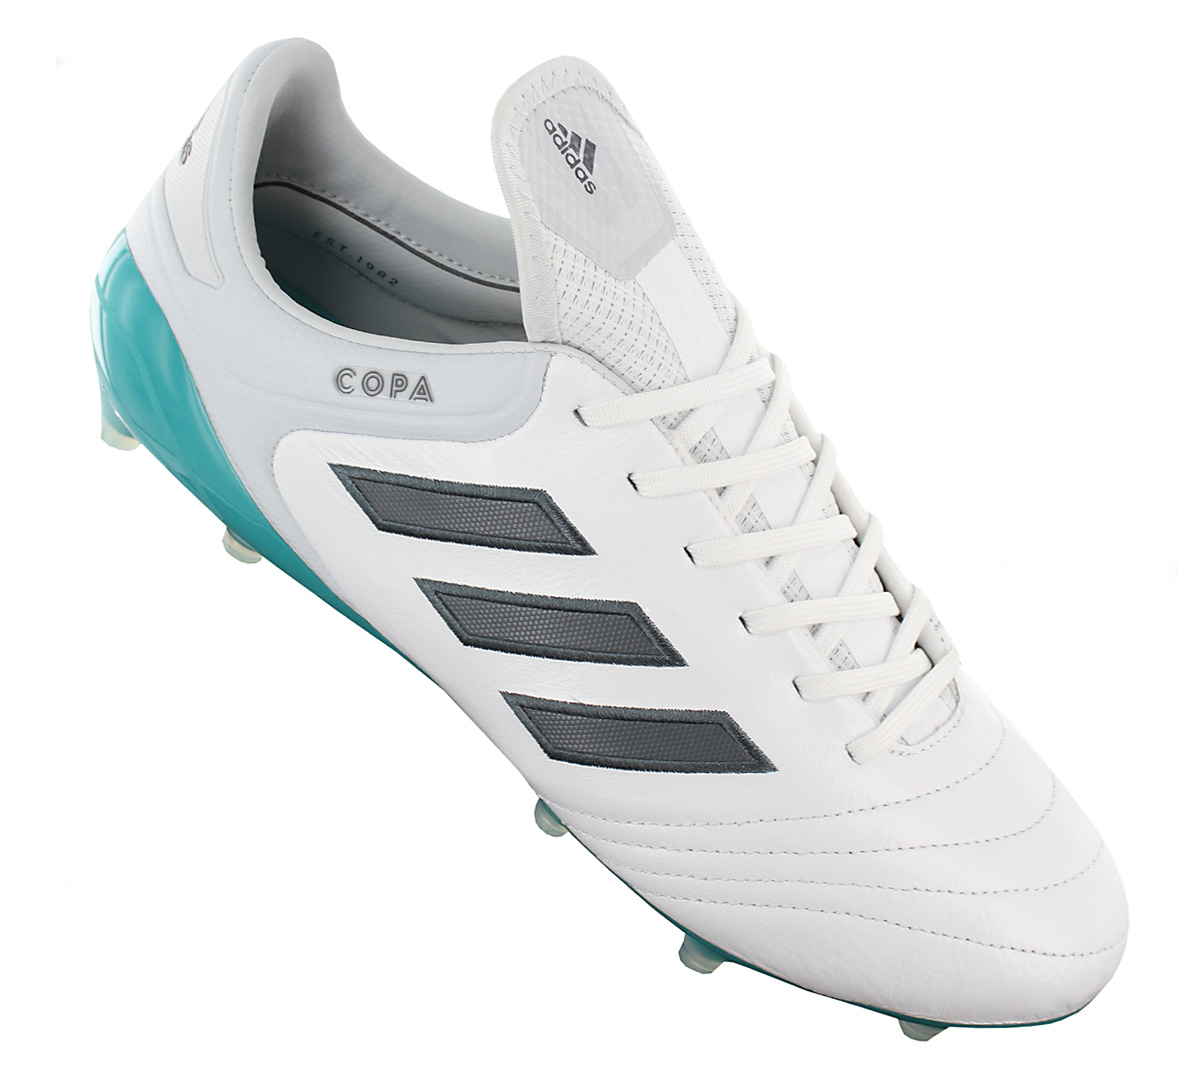 Adidas Copa 17.1 Fg Men s Football Boots Leather White Studs Mundial ... 625cc1d98c4ca